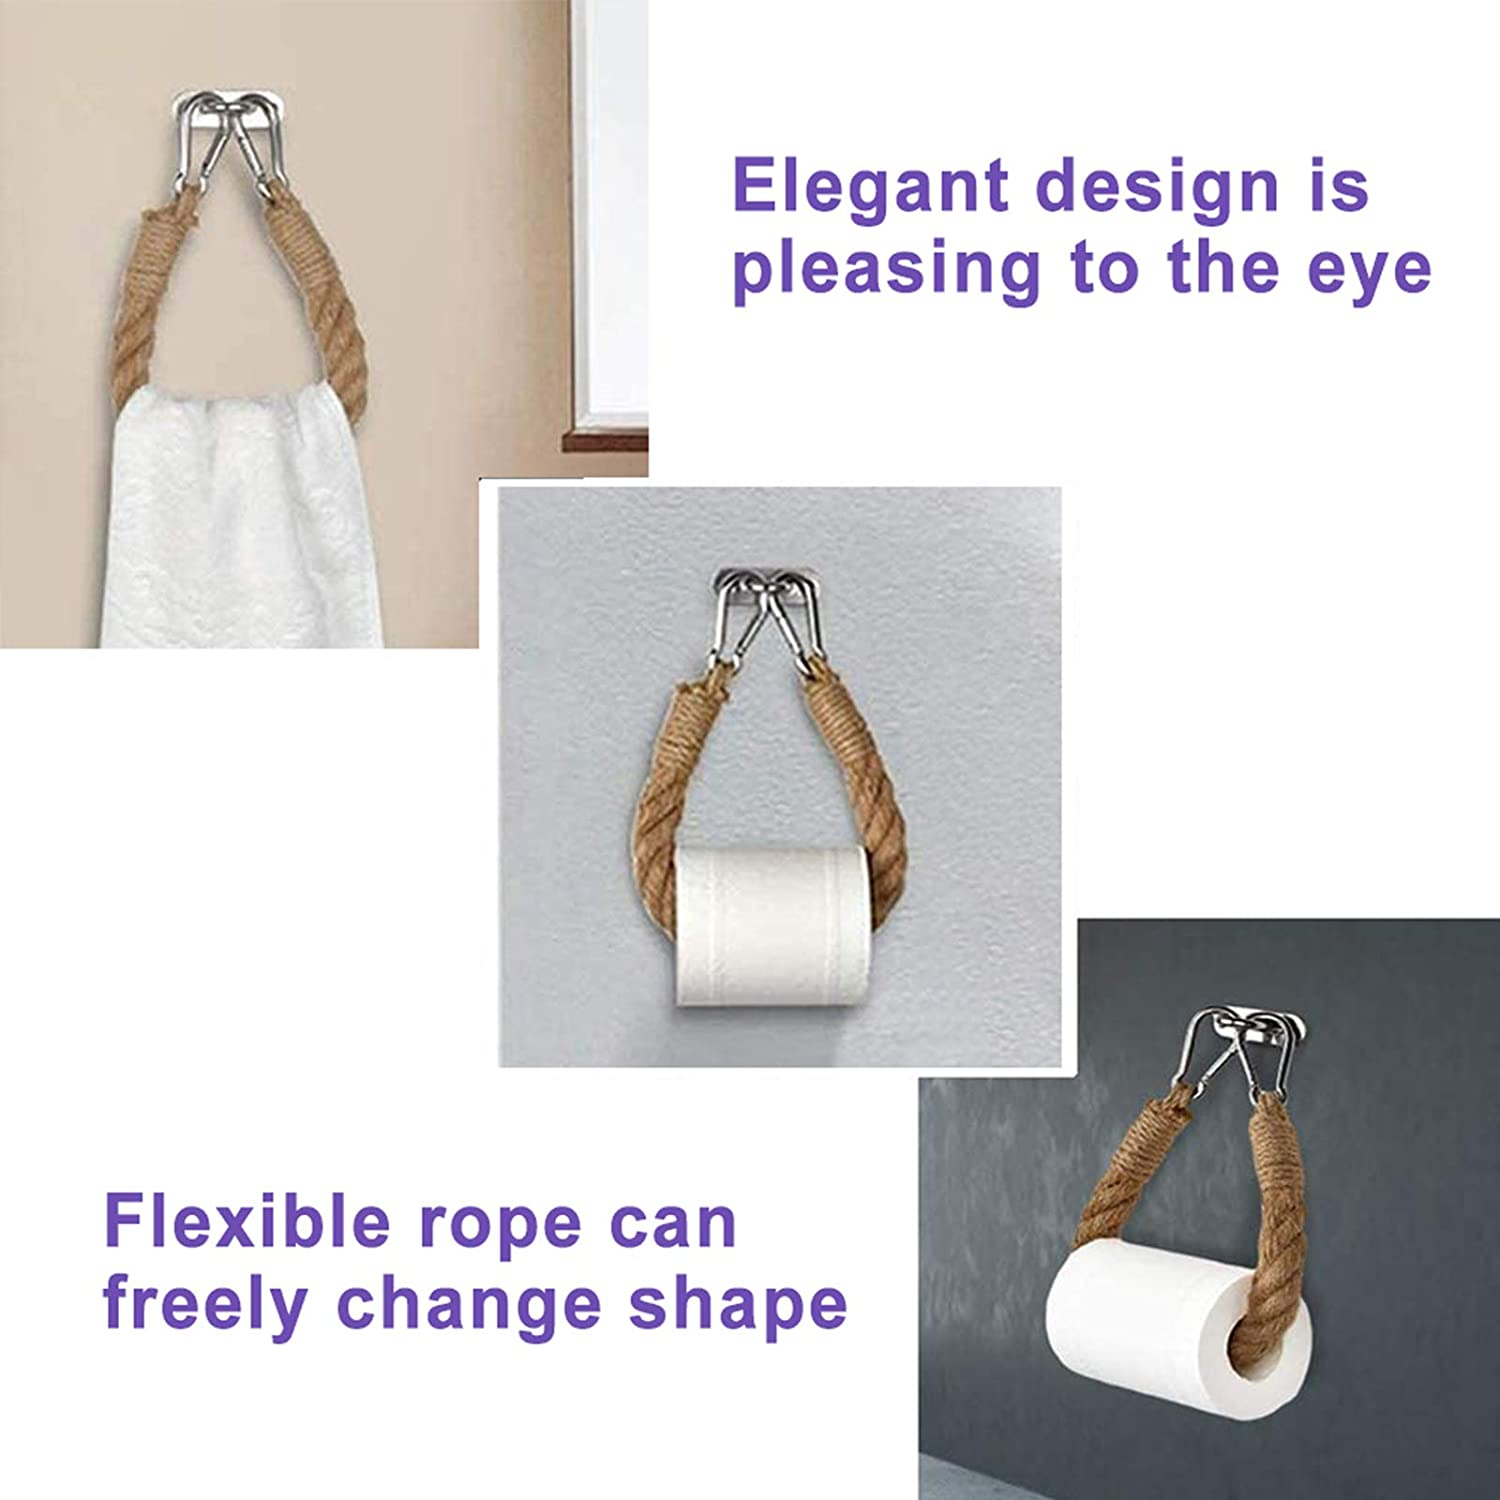 Nautical Rope Toilet Paper Holder Antique Industrial Style Toilet Roll Holder Wall Mounted Towel Rack Bathroom Decor Accessories Bath Towel Rings